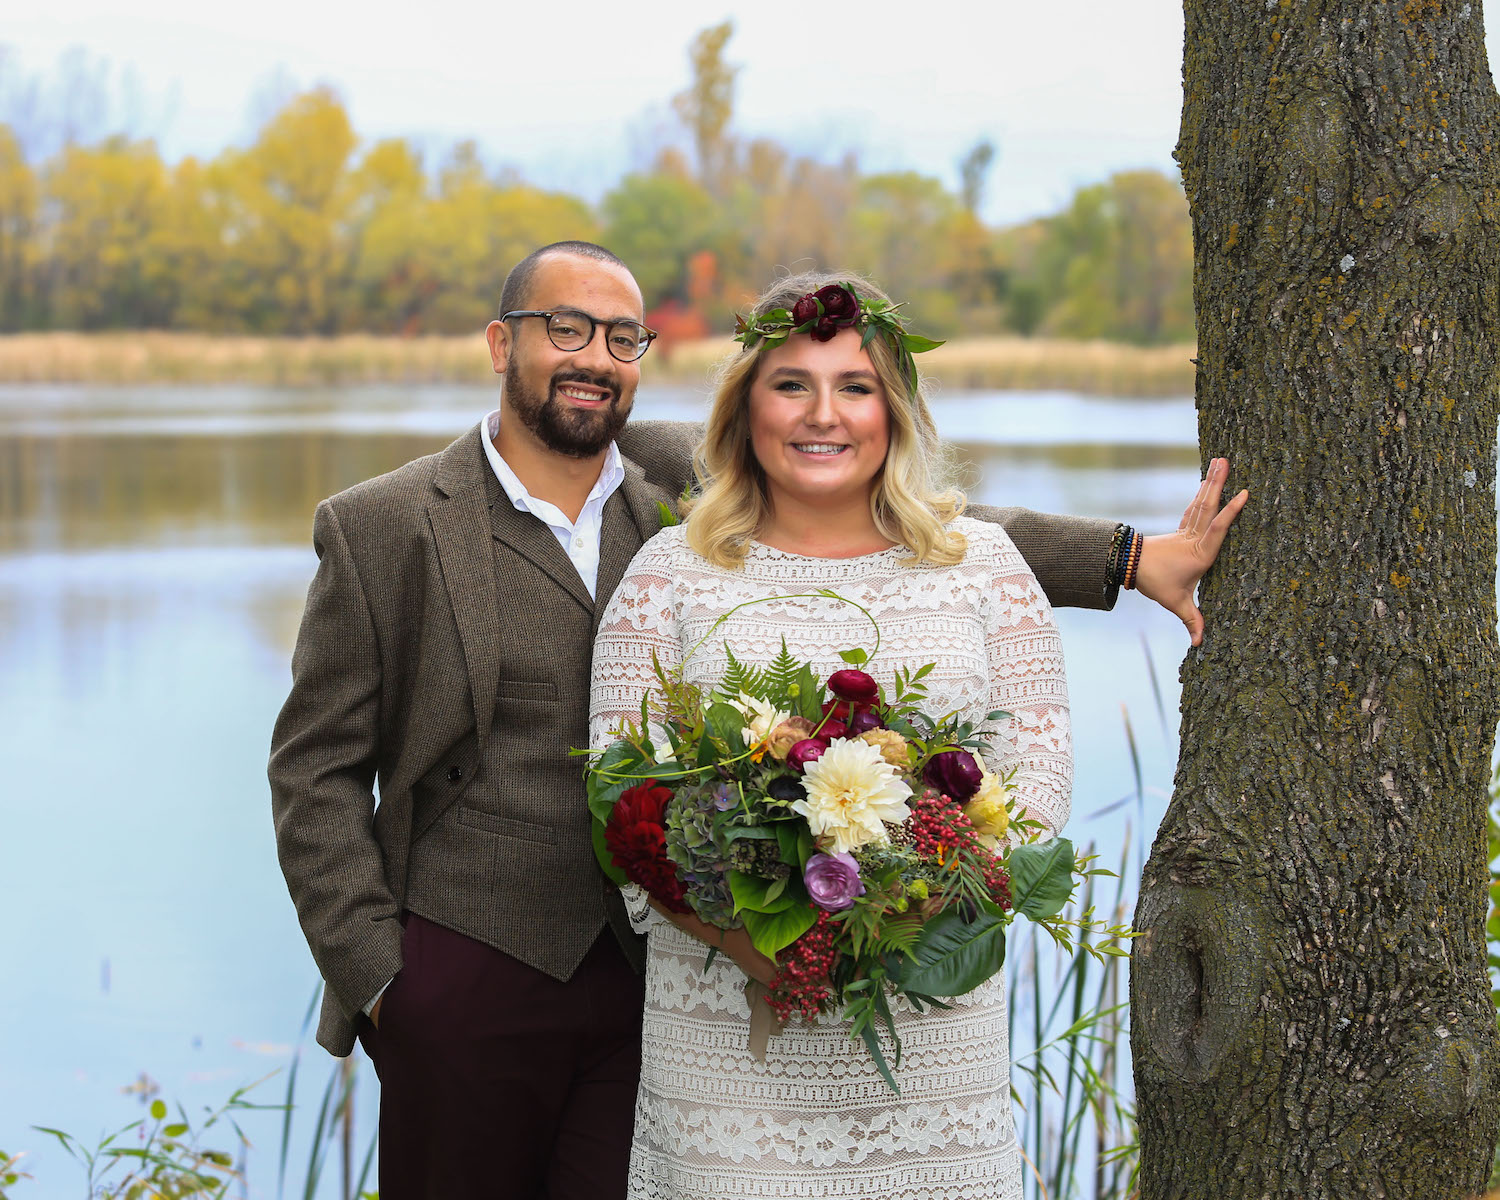 Cindyrella's Garden, outdoor ceremony on the lake in Minnesota, bearded groom